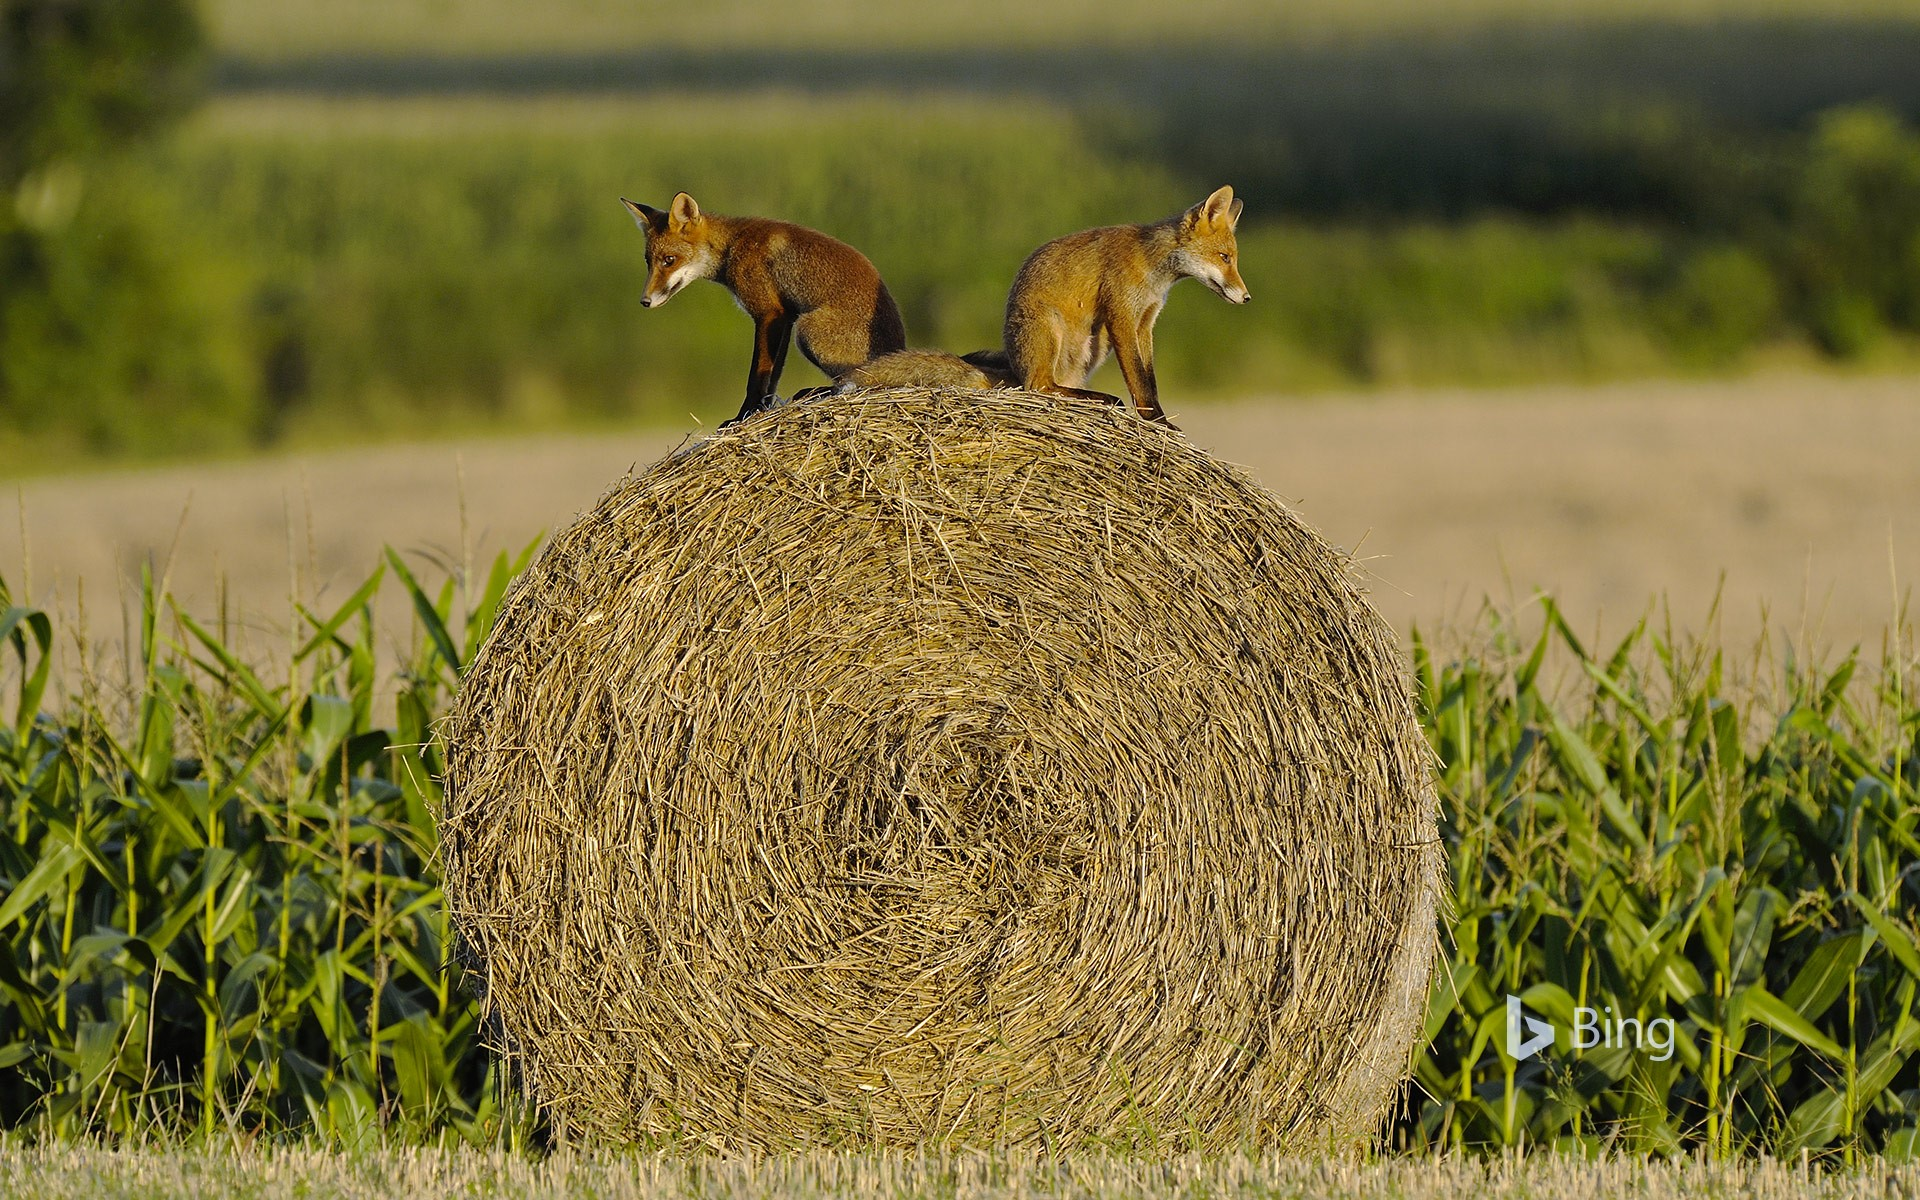 Young red foxes on a hay bale, Vosges, France